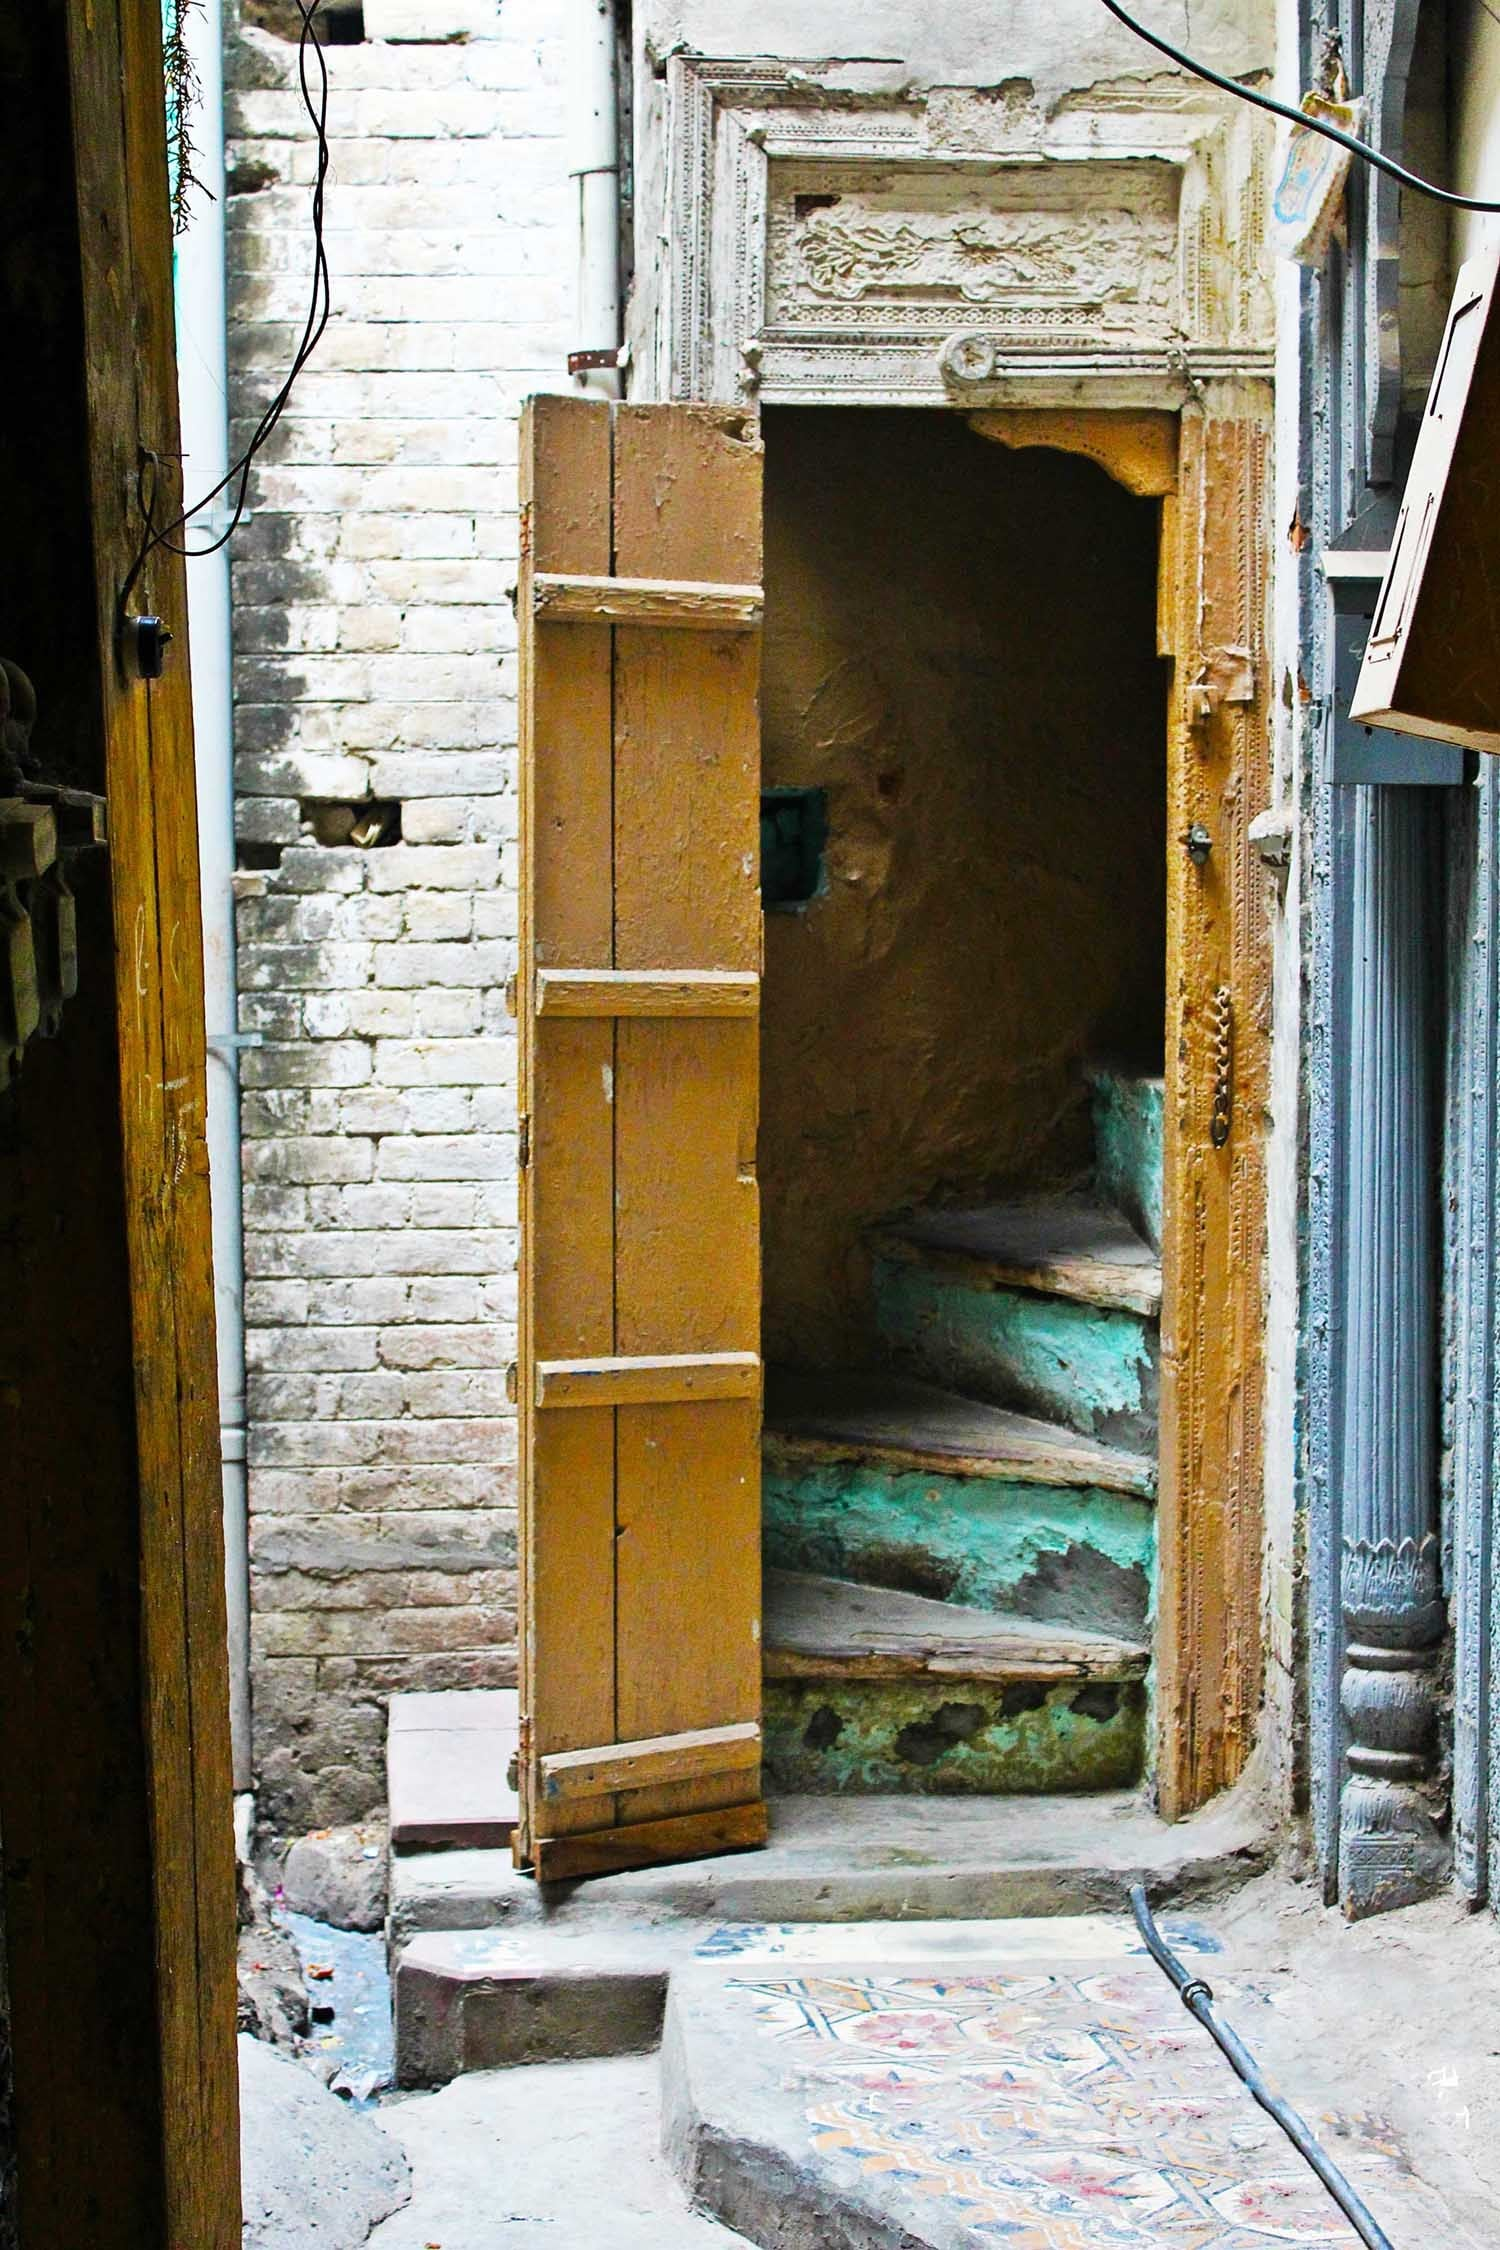 A narrow, winding stair case leading up to a preserved *haveli*, which still has traces of its magnificent architecture from 1893.